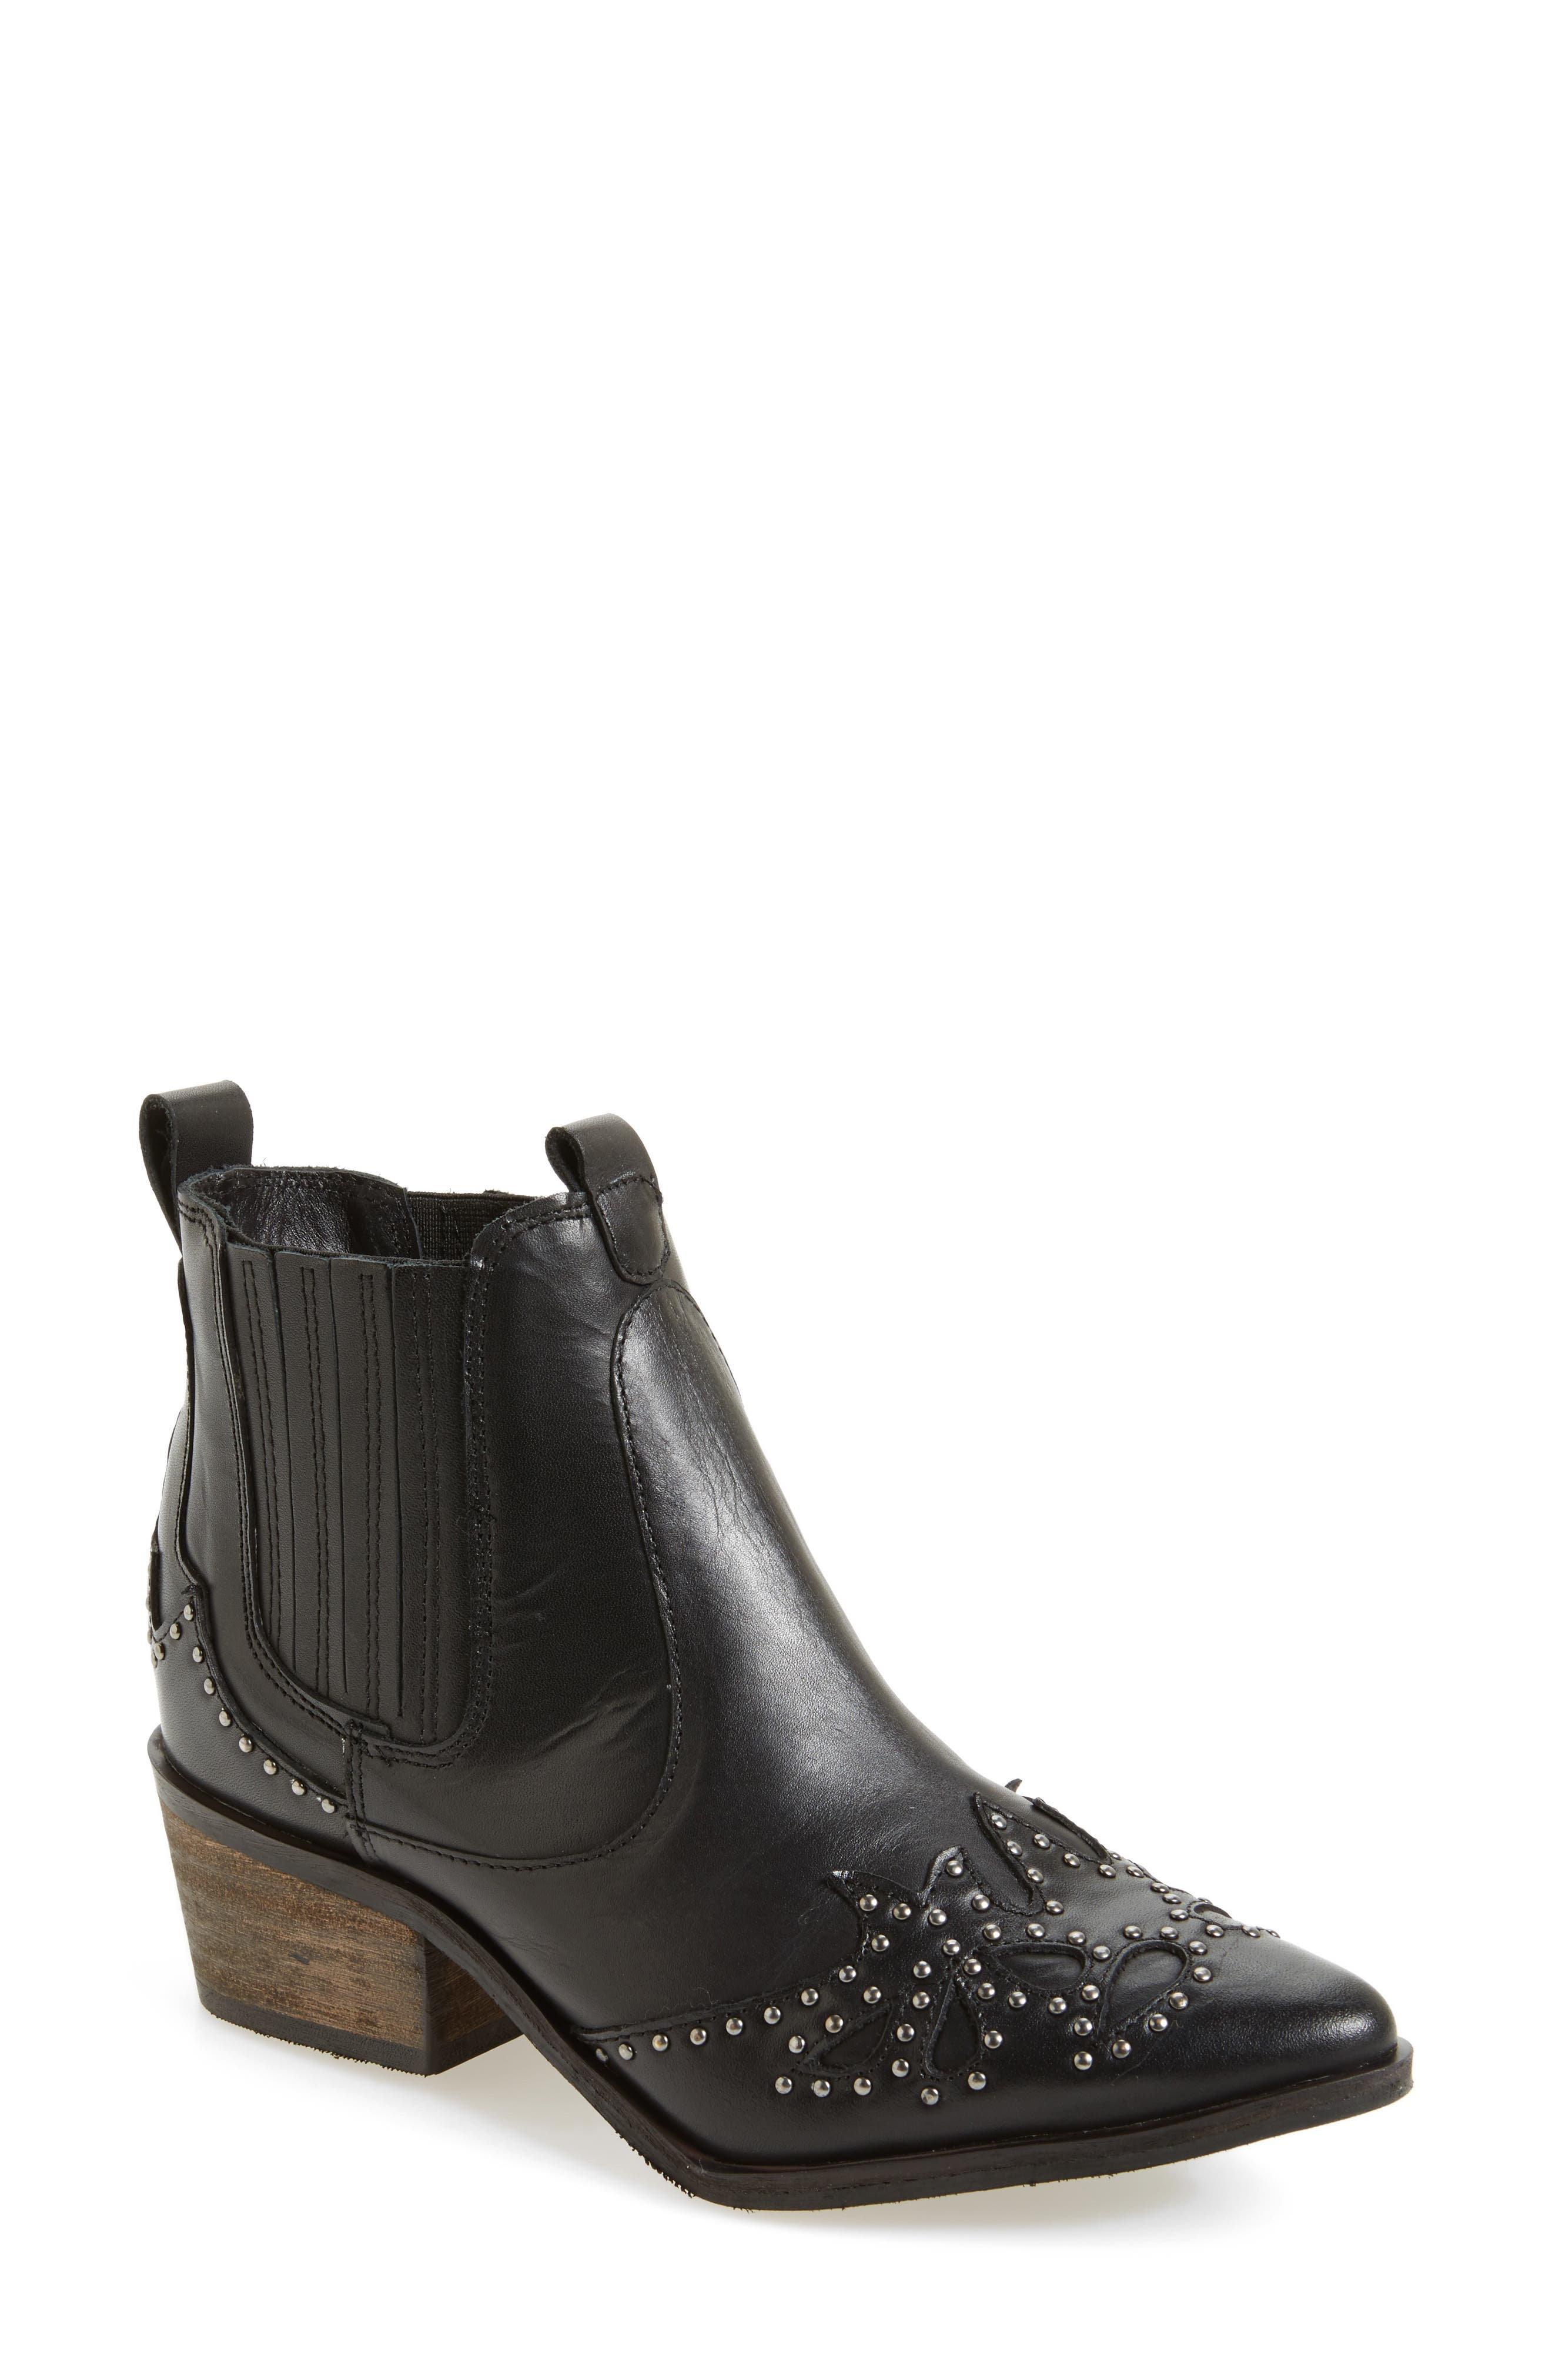 Backstage Bootie,                         Main,                         color, 001